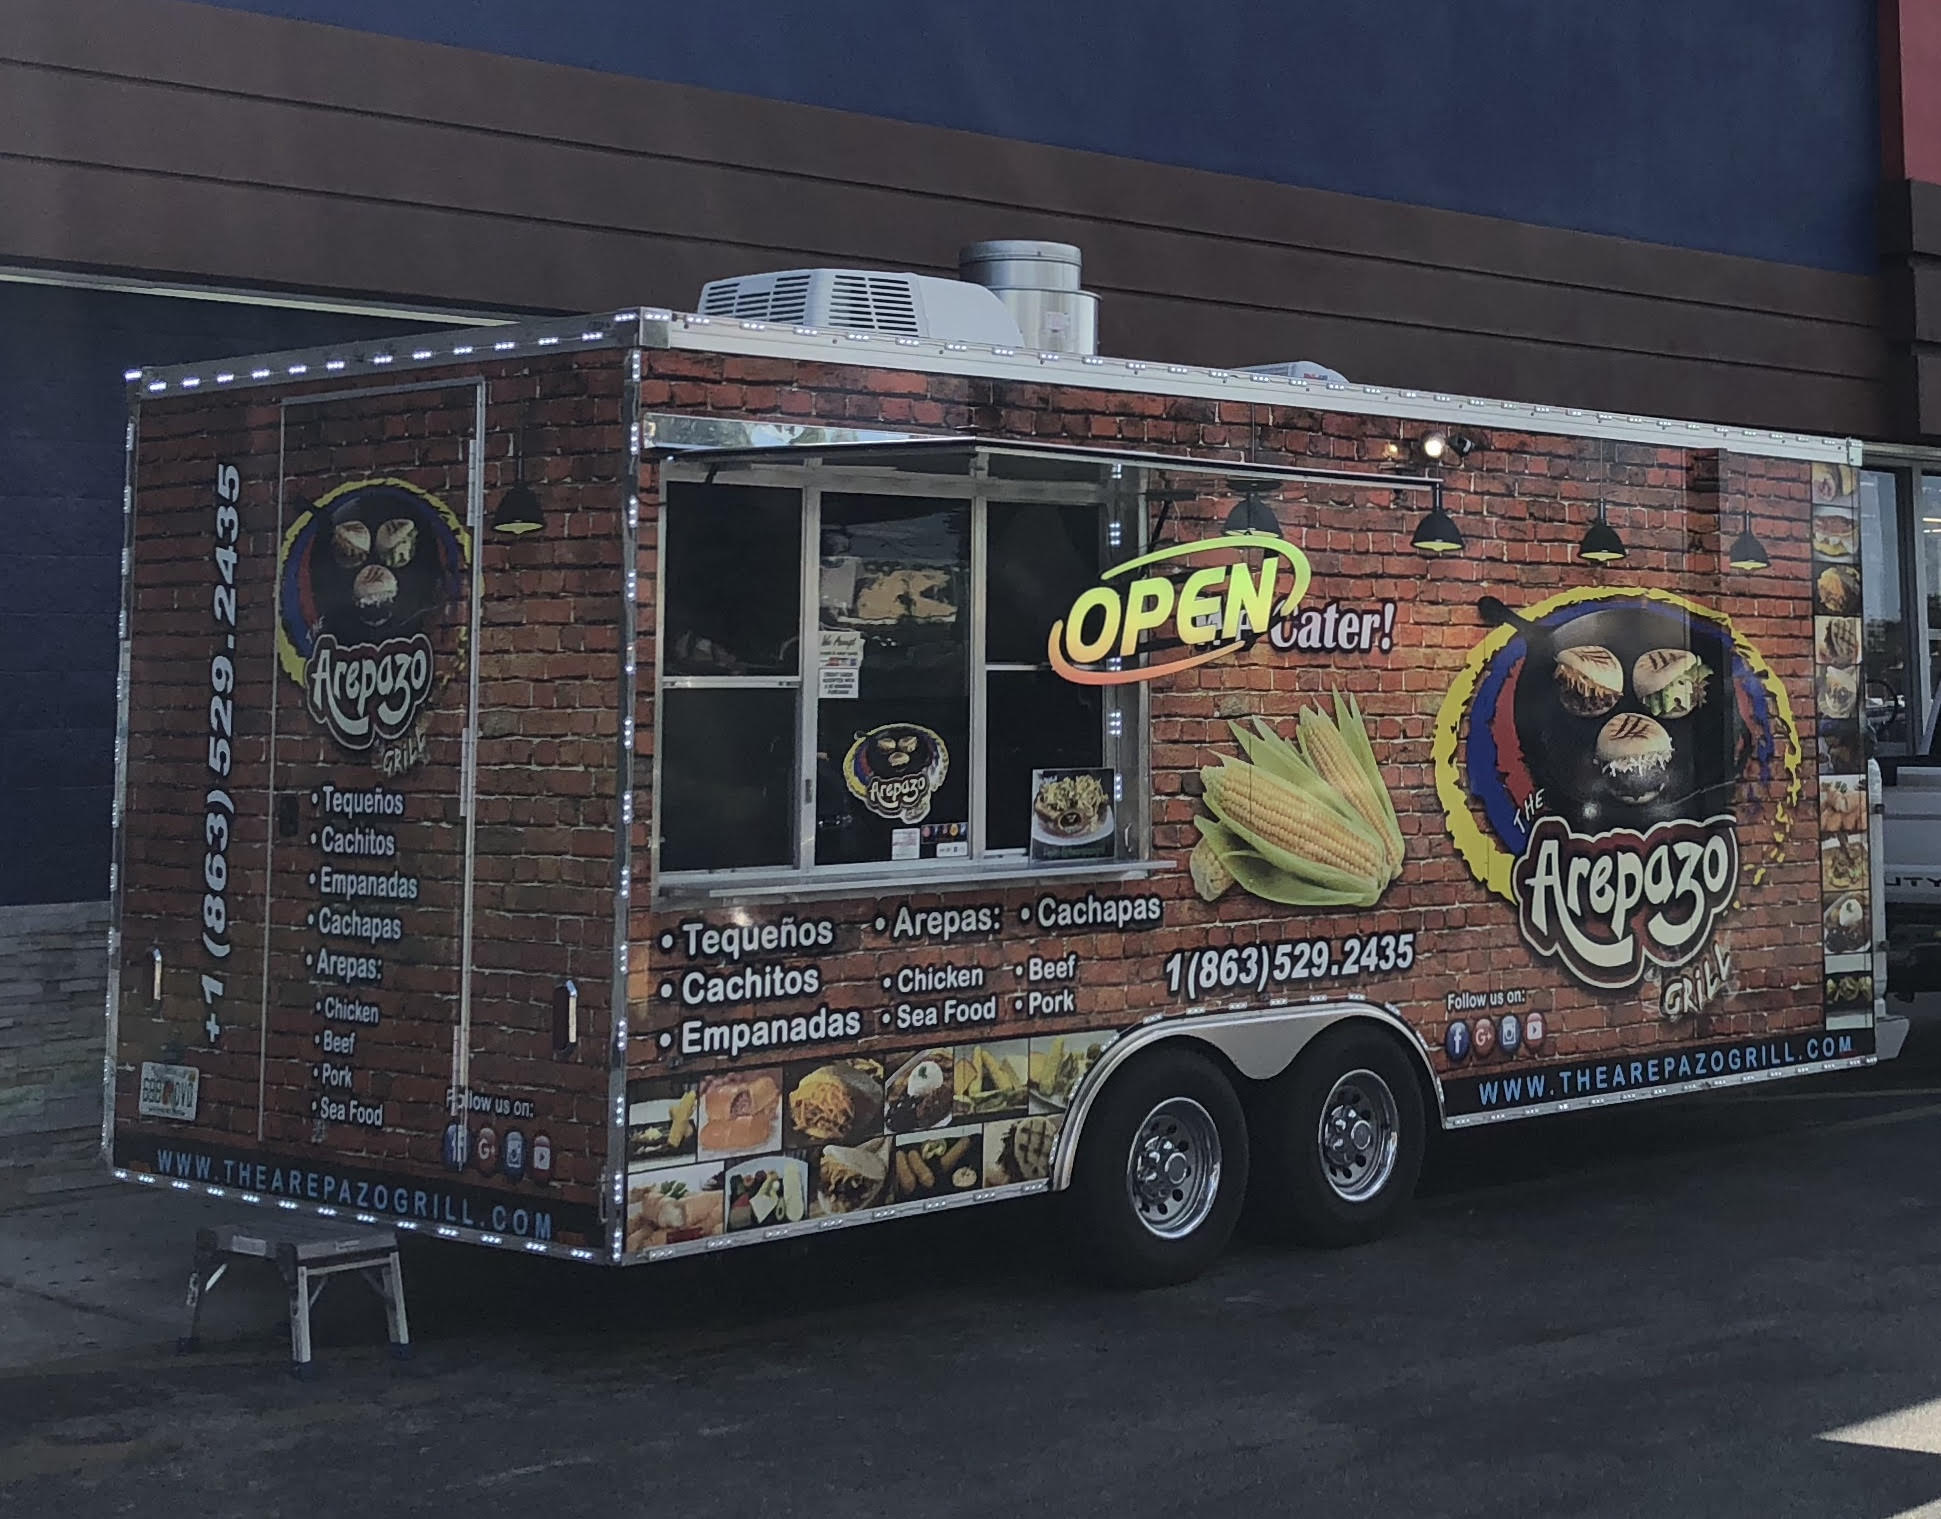 The Arepazo Grill Food Truck